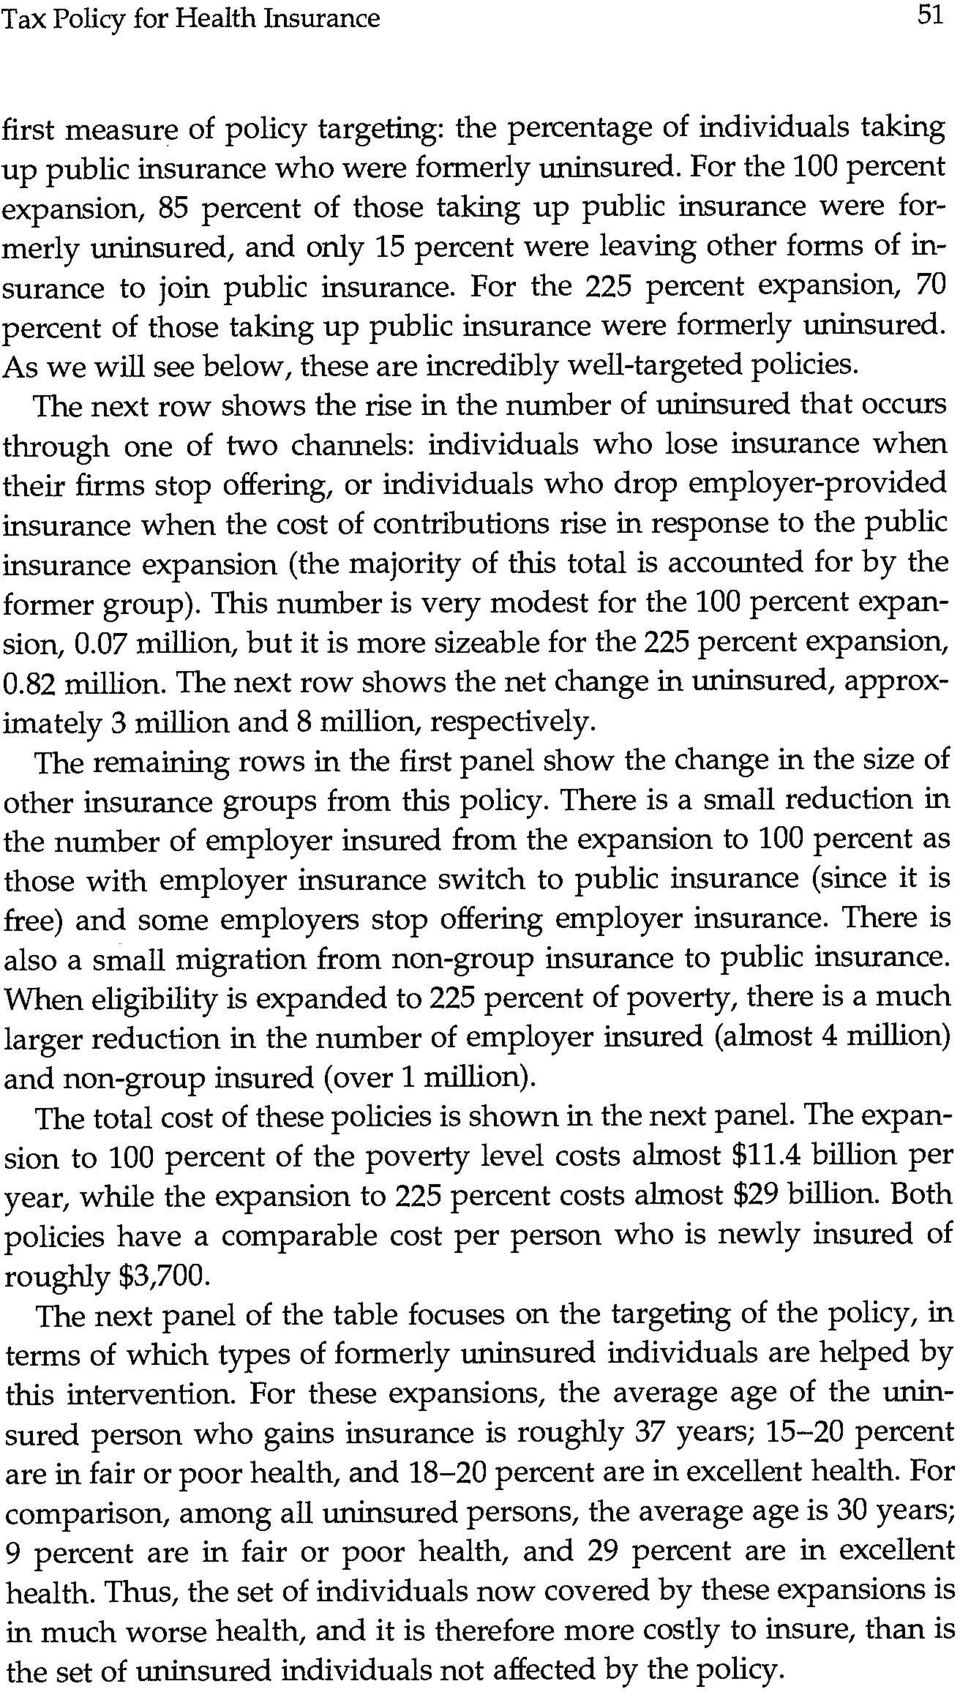 For the 225 percent expansion, 70 percent of those taking up public insurance were formerly uninsured. As we wifi see below, these are incredibly well-targeted policies.